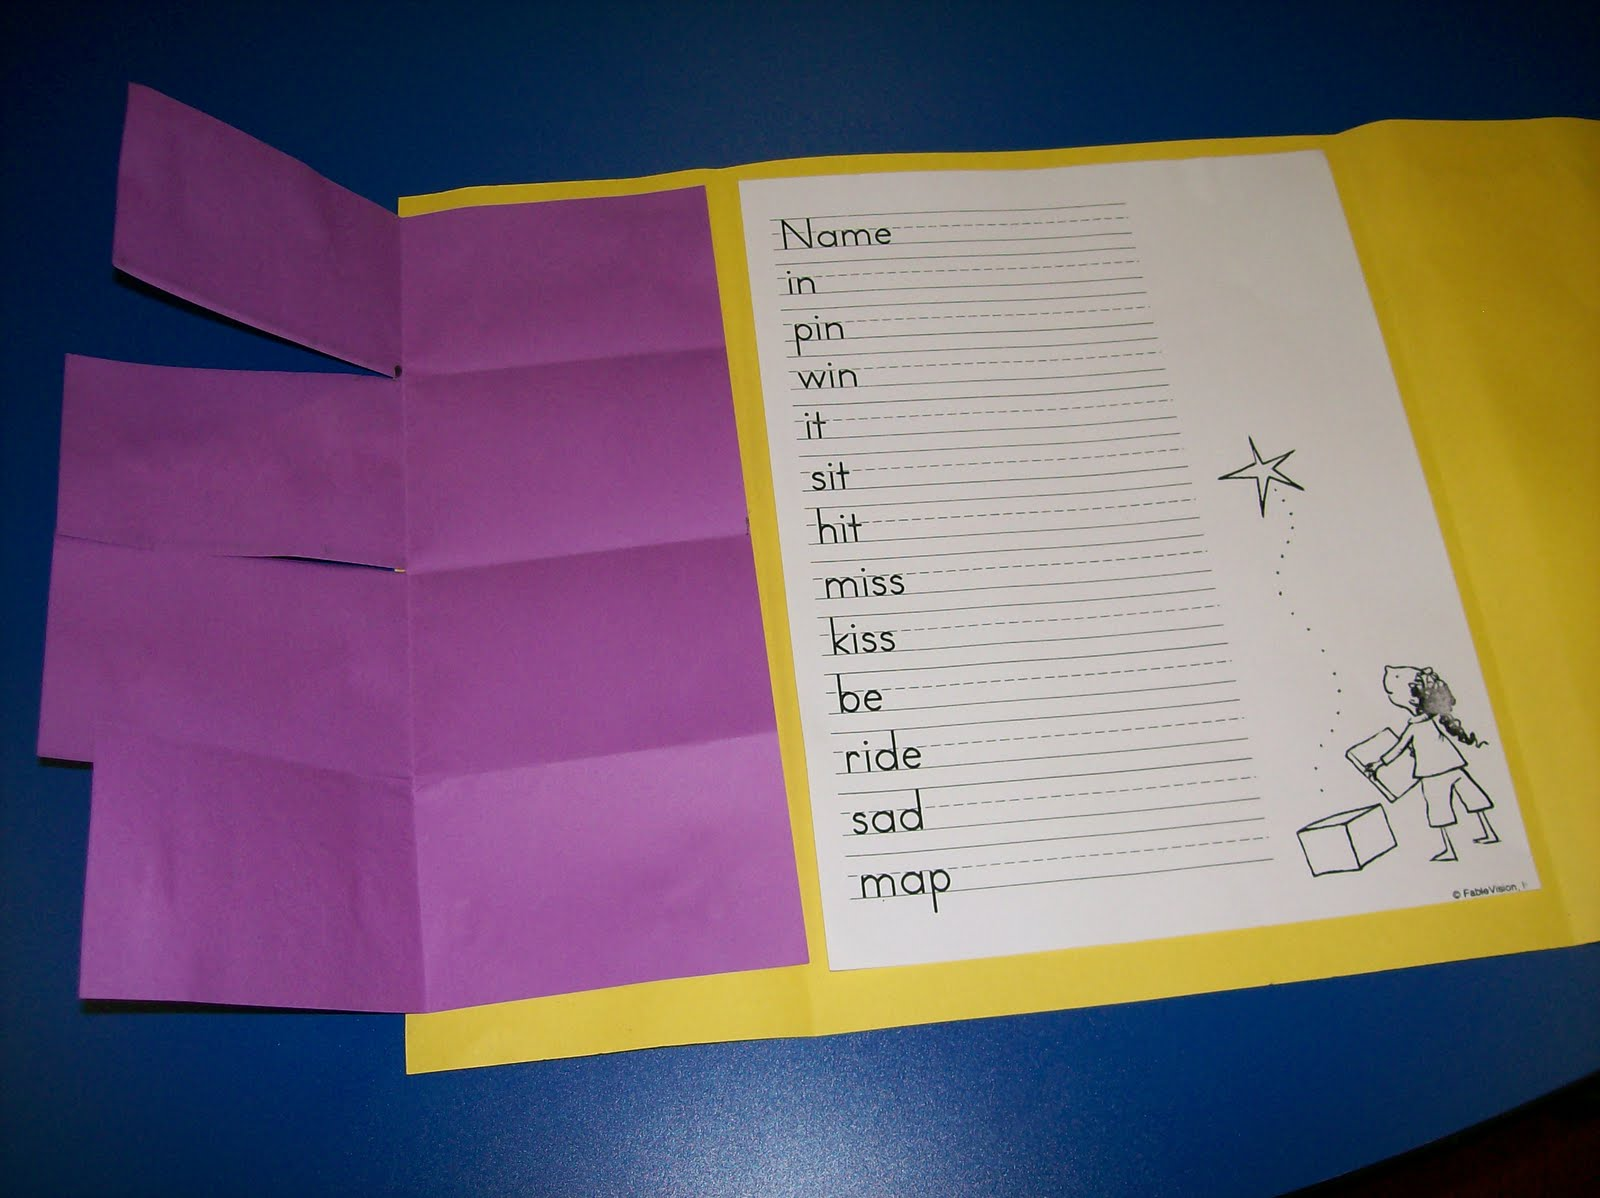 ... section. We practice writing the words and assembling the words